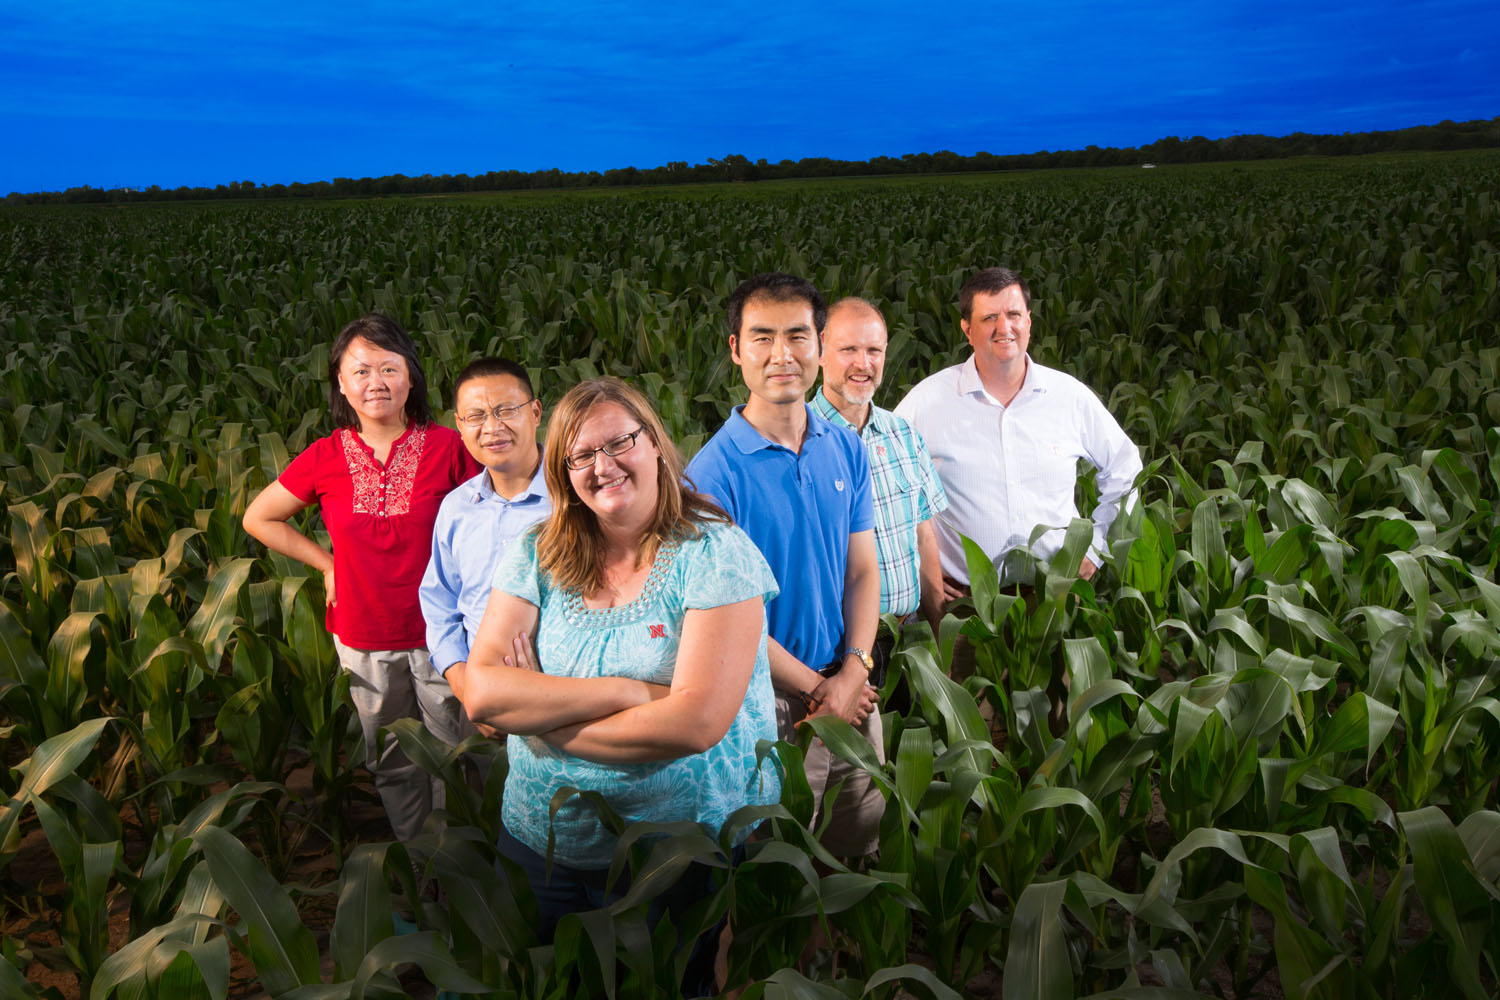 UNL climate change and groundwater quality team, from left: Yusong Li, civil engineering; Zhenghong Tang, community and regional planning; Shannon Bartelt-Hunt and Xu Li, civil engineering; Dan Snow, Nebraska Water Center; and Eric Thompson, economics. Not pictured, David Rosenbaum, economics.